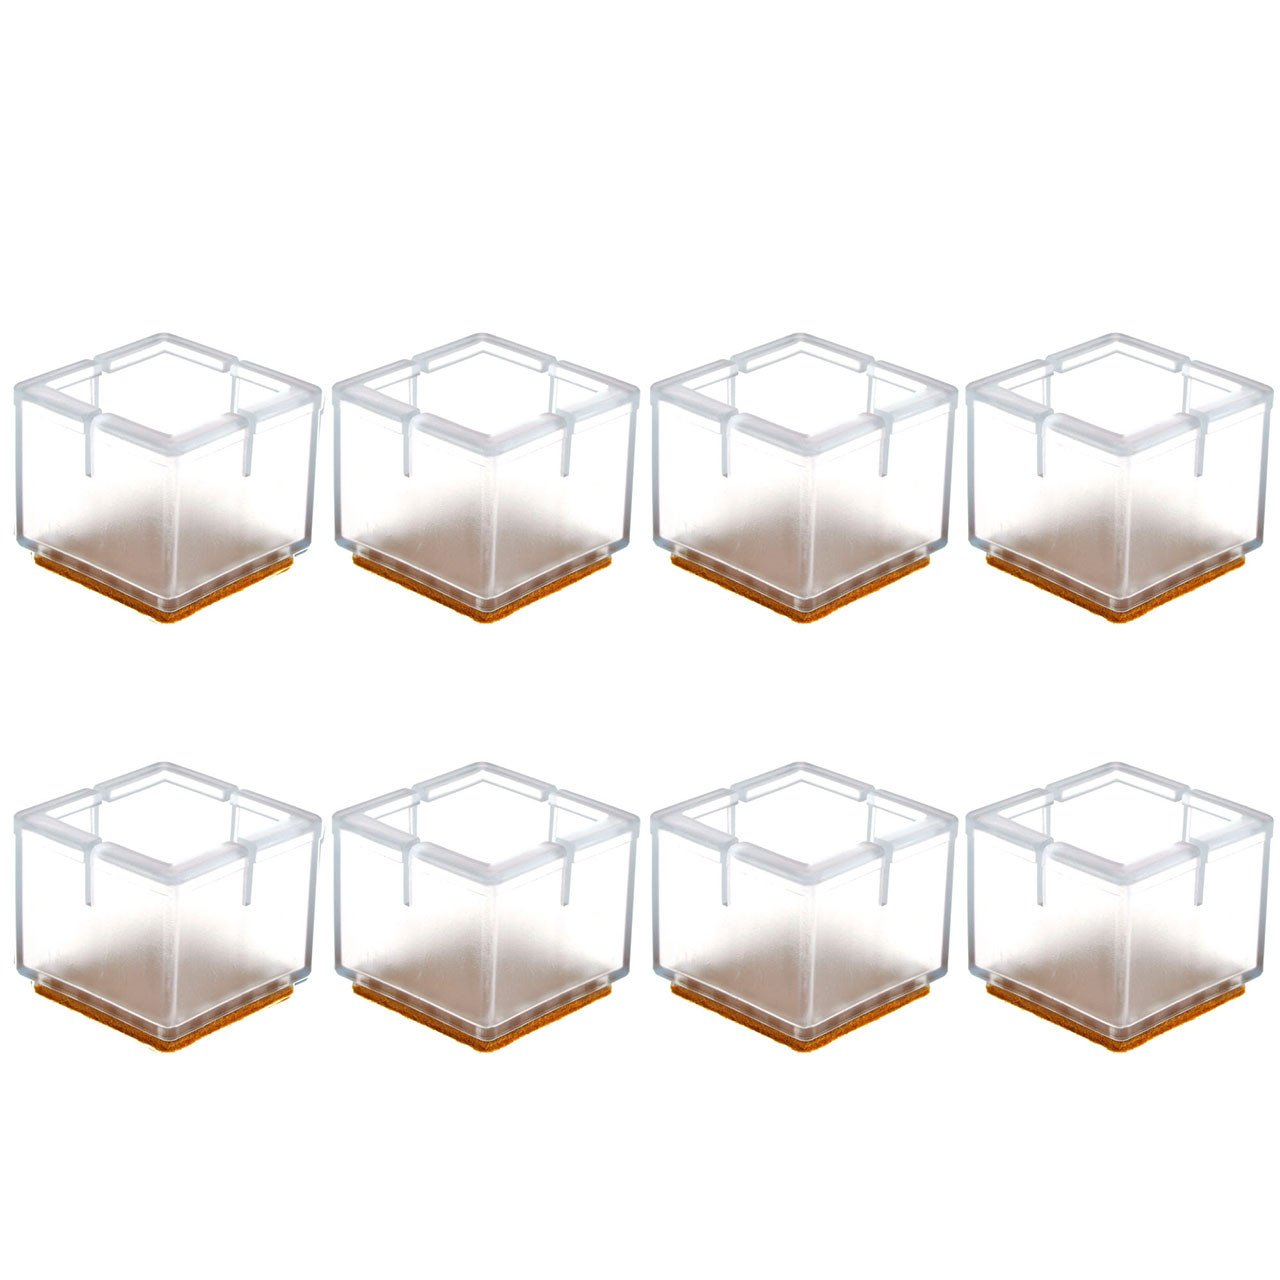 Square Furniture Wood Floor Protectors Silicone Table Leg